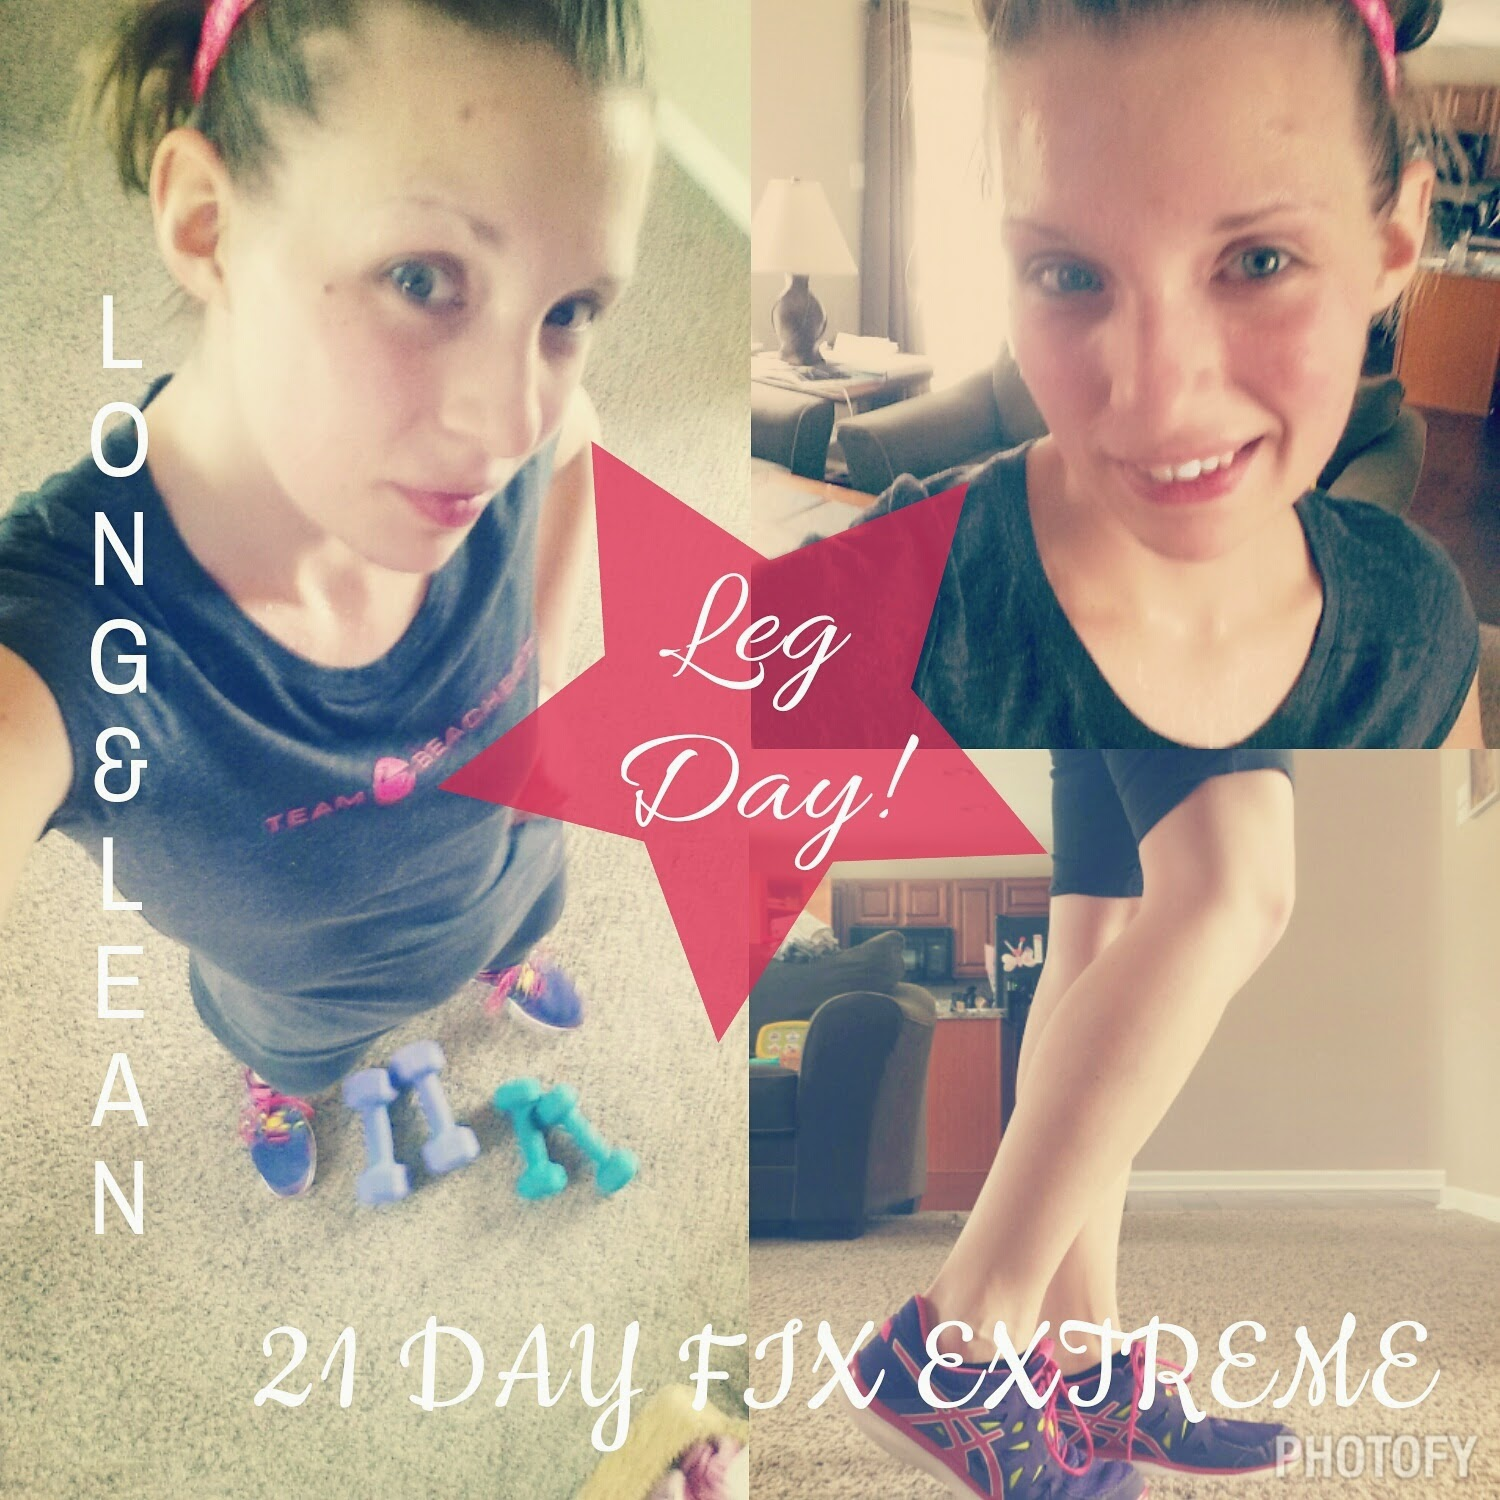 Erin Traill, diamond beachbody coach, dramatic weight loss, 21 day fix approved, 21 day fix extreme, 21 day fix extreme countdown to competition meal plan, workout video, 21 day fix extreme approved recipe,